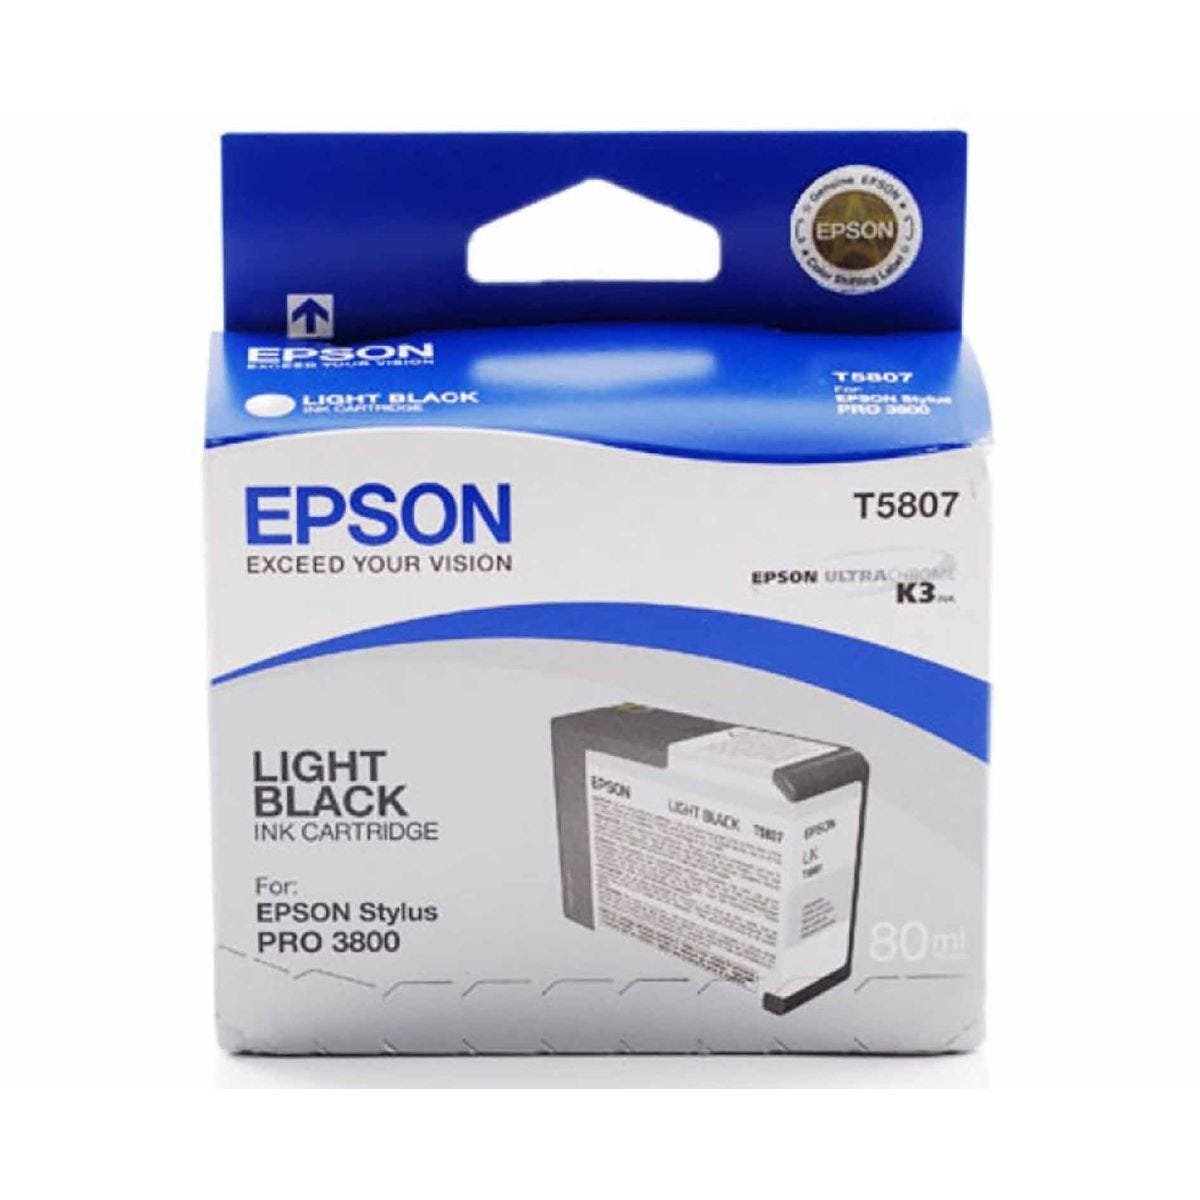 Epson PRO3800 Ink Light Black